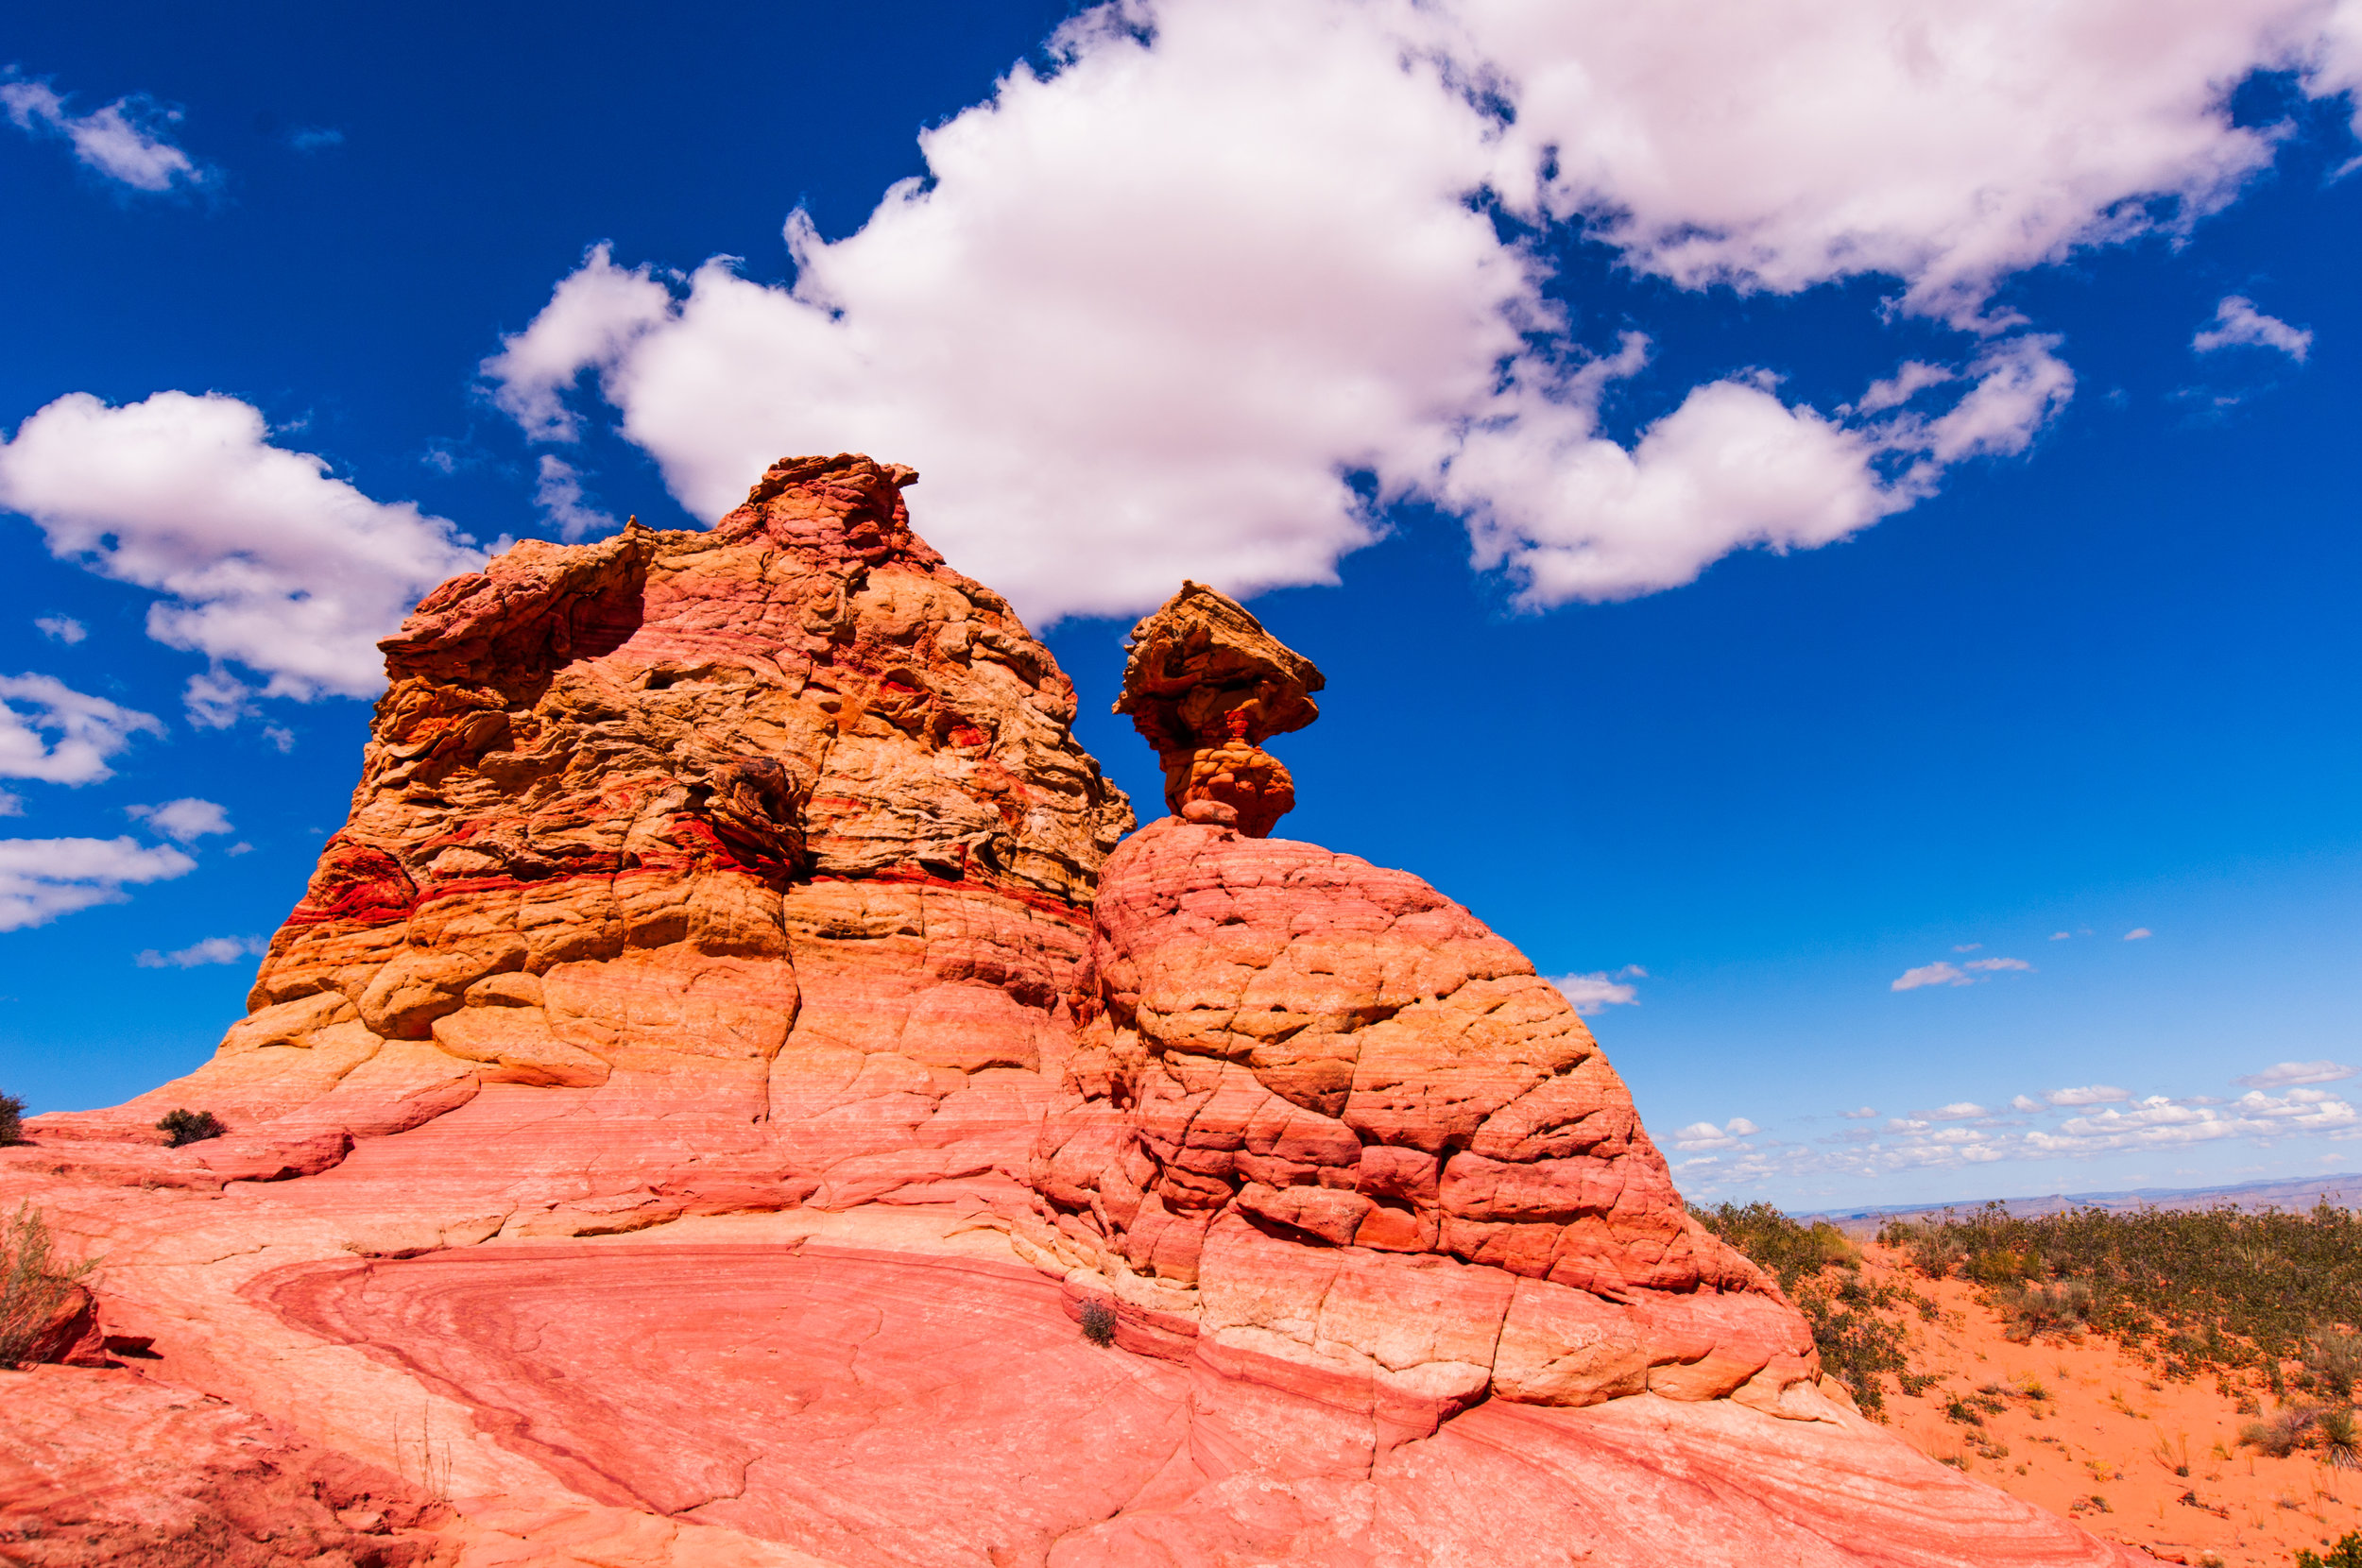 140918. Coyote_Buttes_South (78).jpg